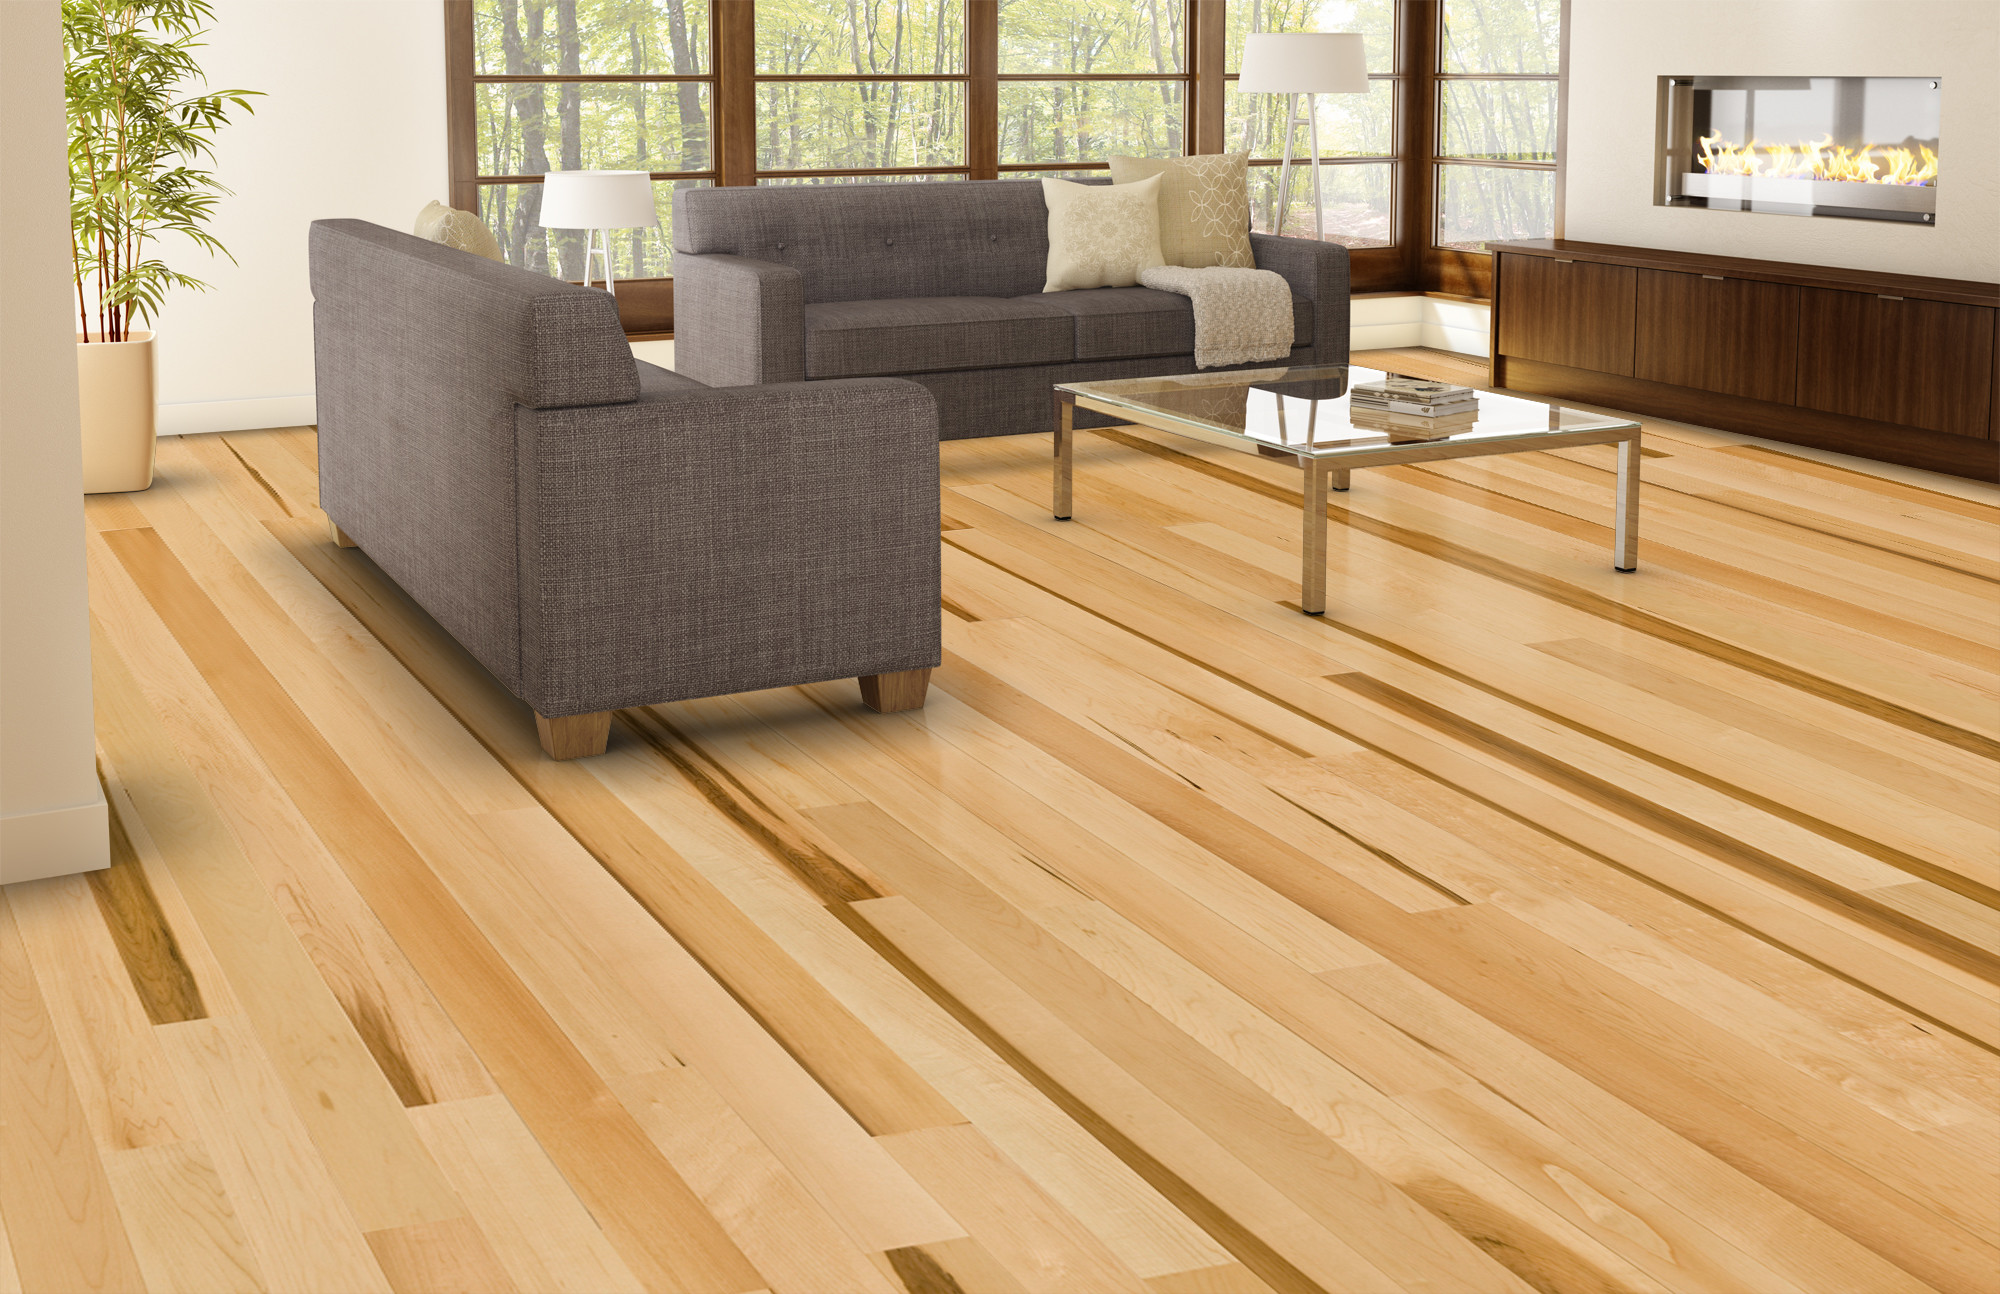 lauzon hardwood flooring reviews of lauzon hardwood floors yellow birch kenya flooring inspiration for contemporary living room hardwood flooring hard maple natural essential lauzon